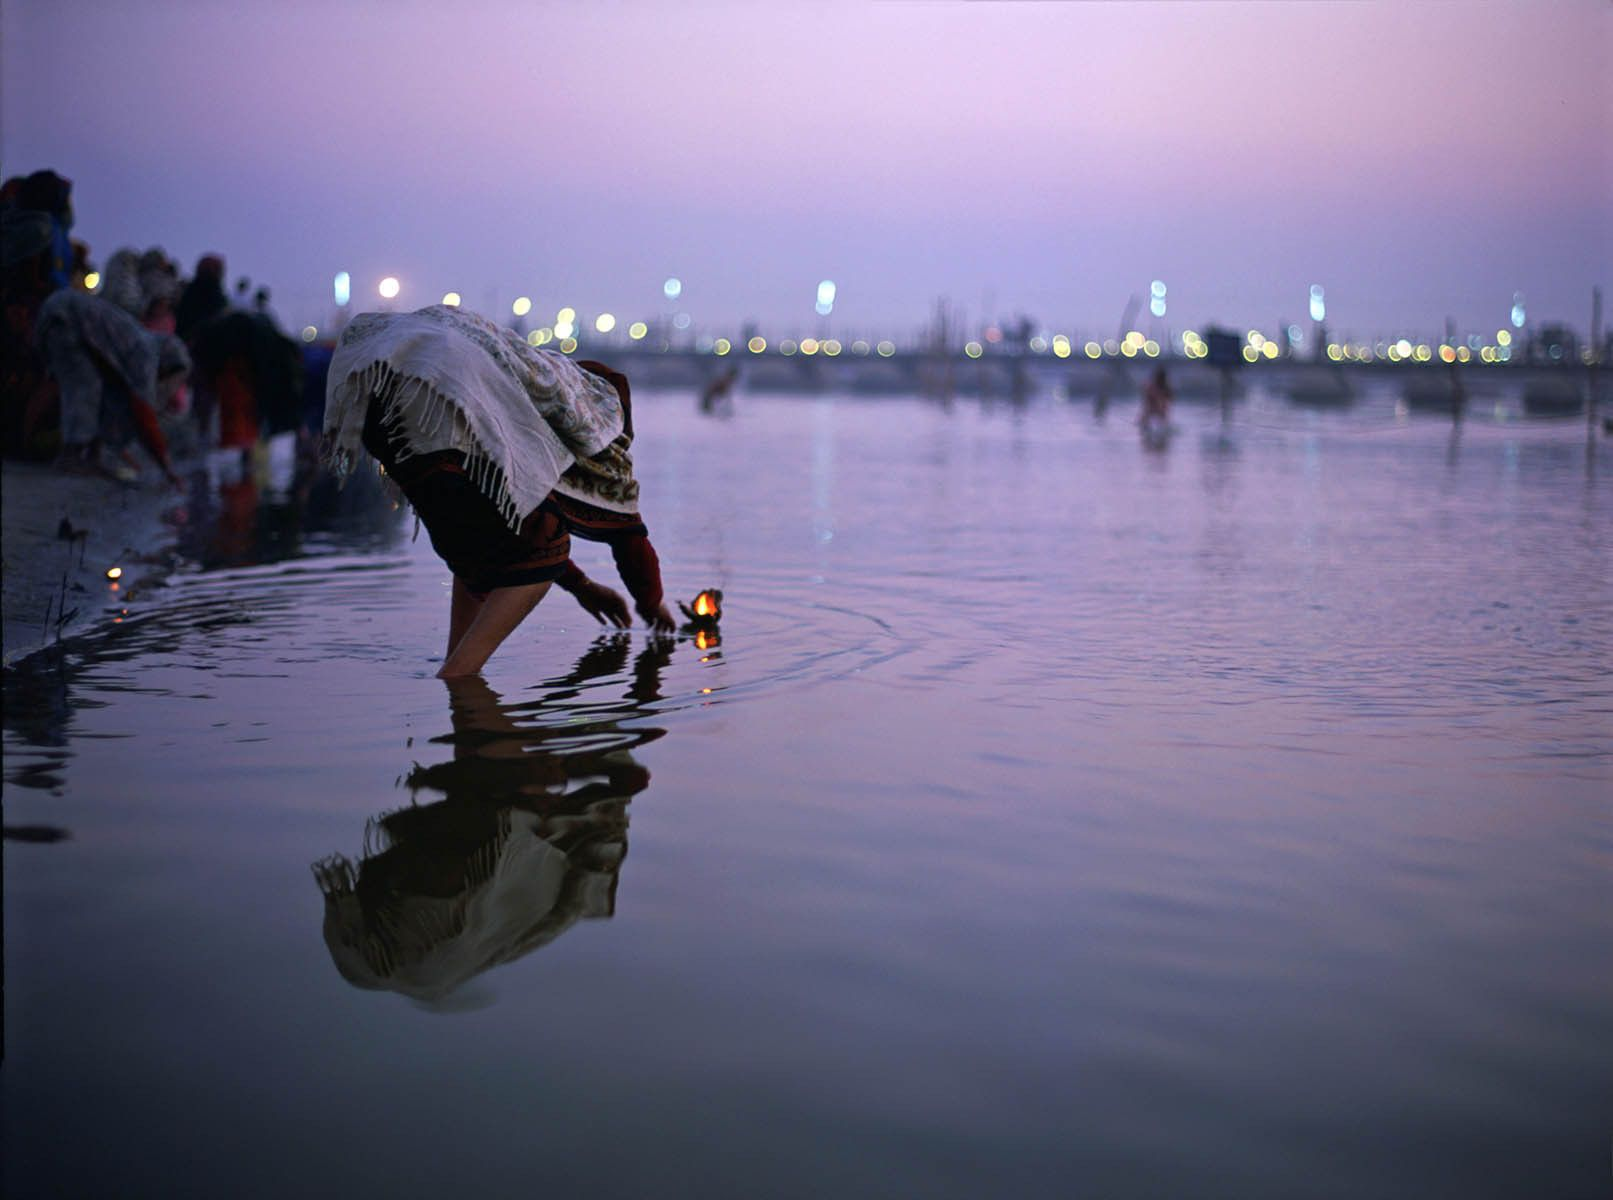 Puja at twilight on the Ganges River, Allahabad, India